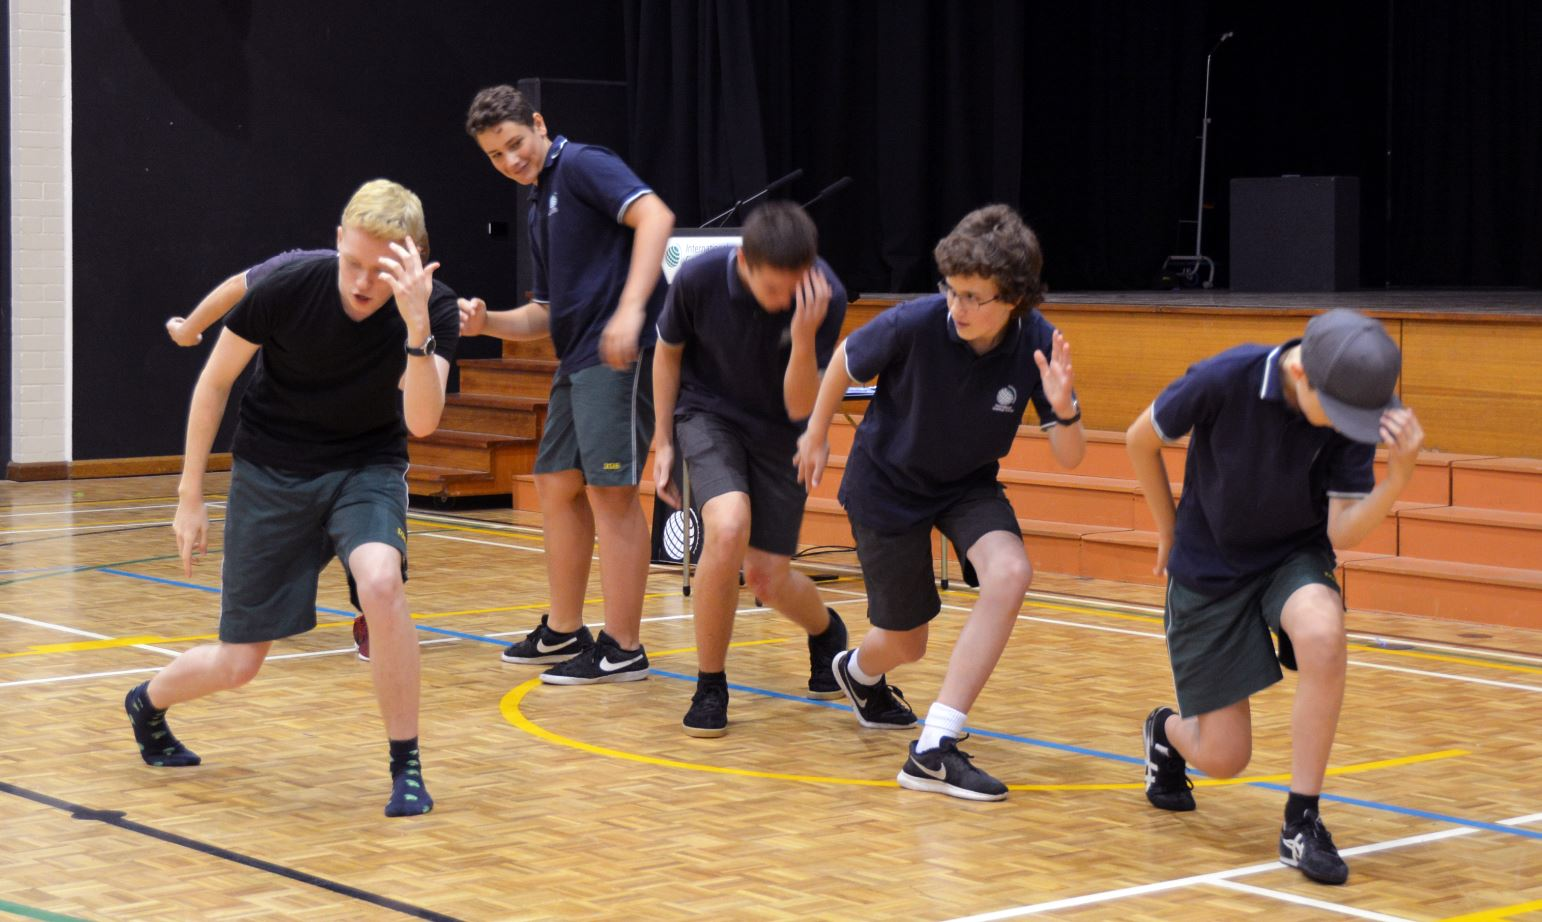 igs-grease-rehearsals-2